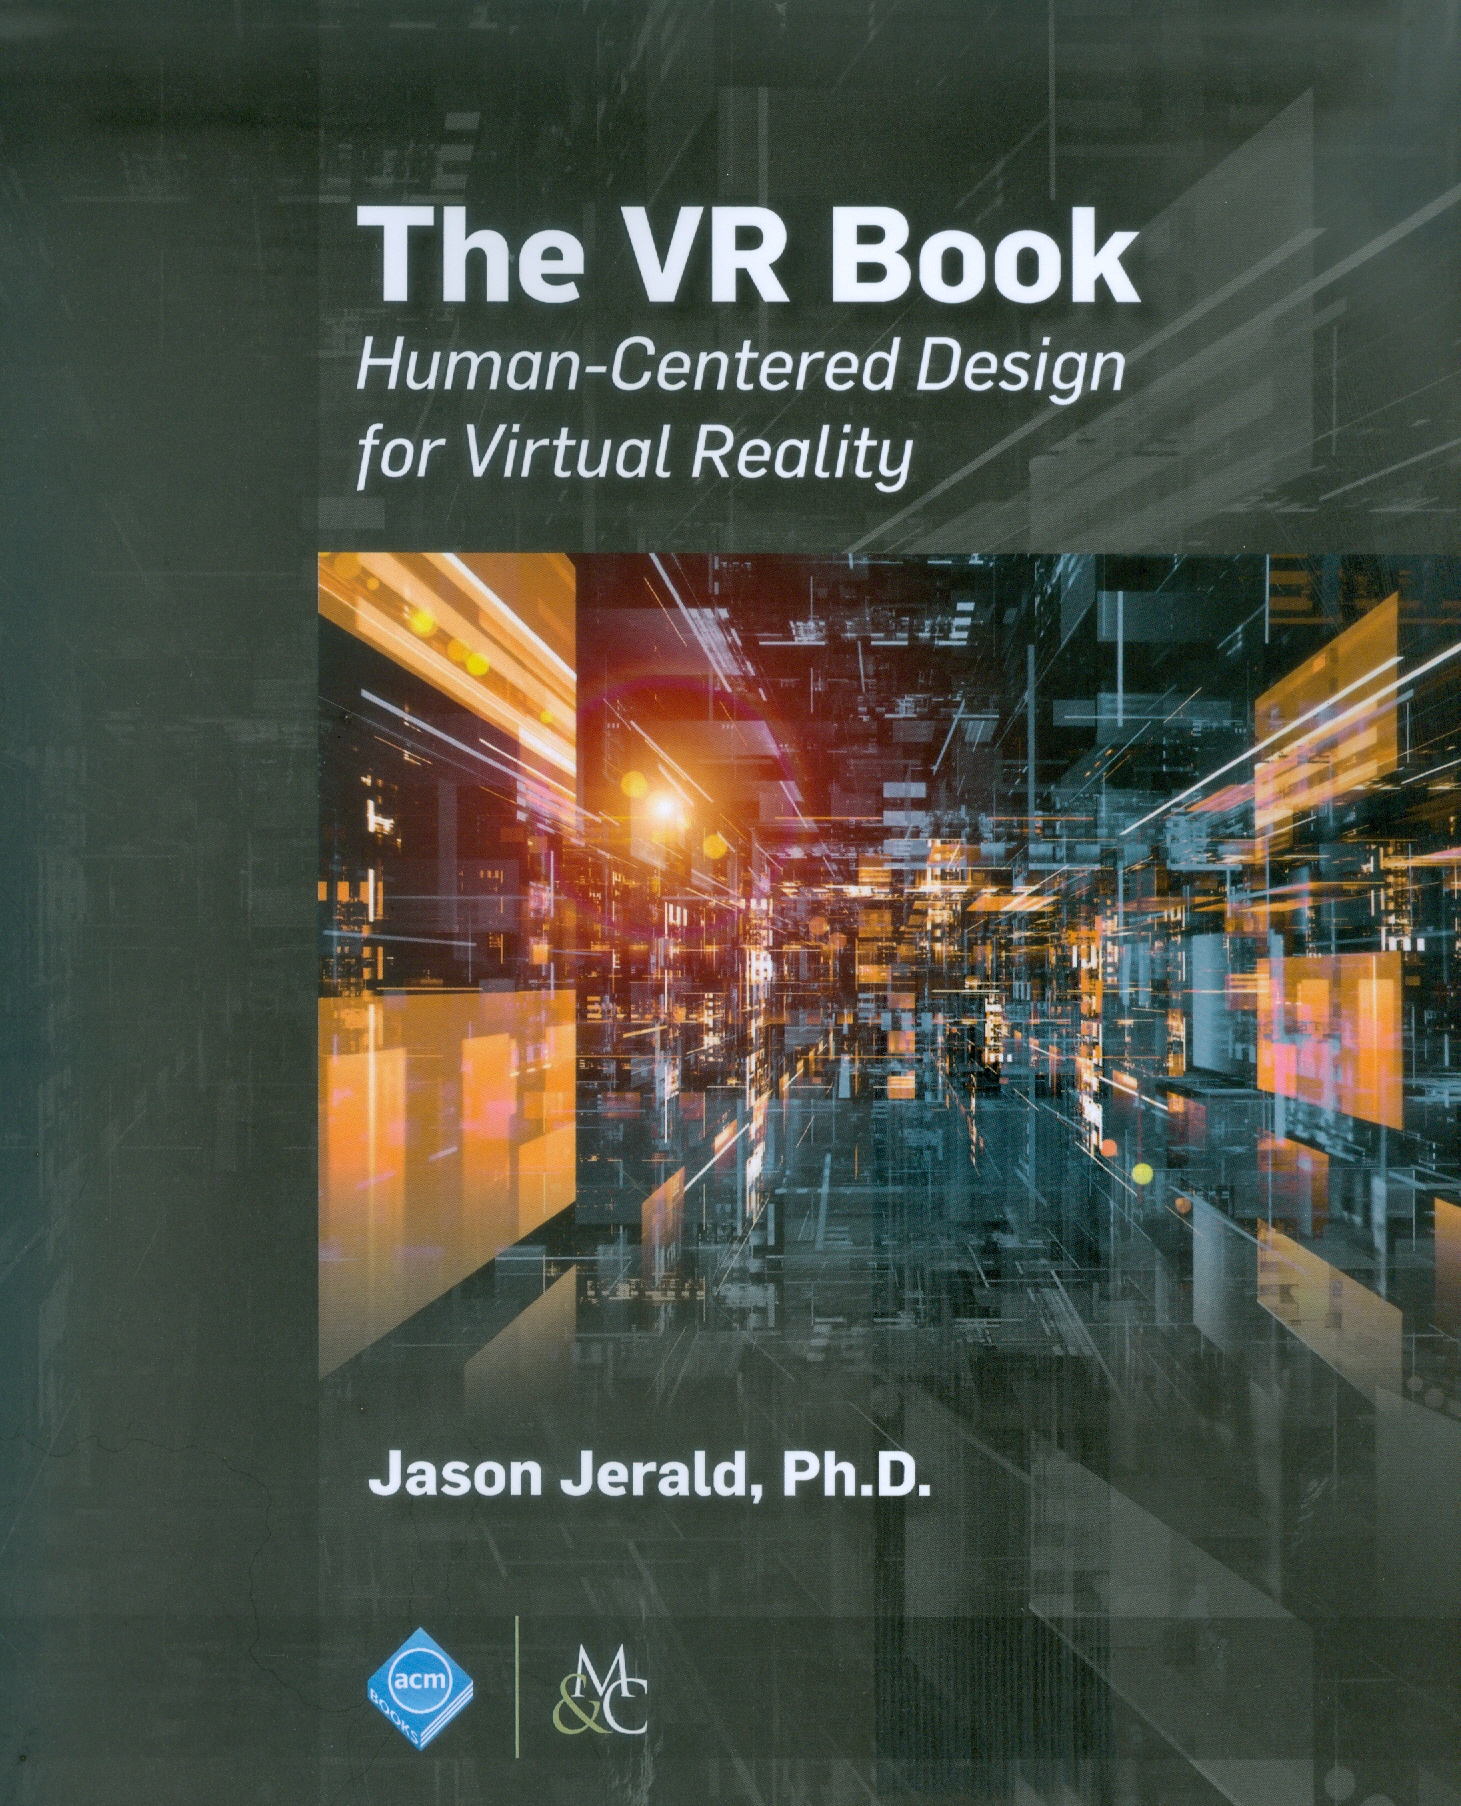 The VR book0001.jpg